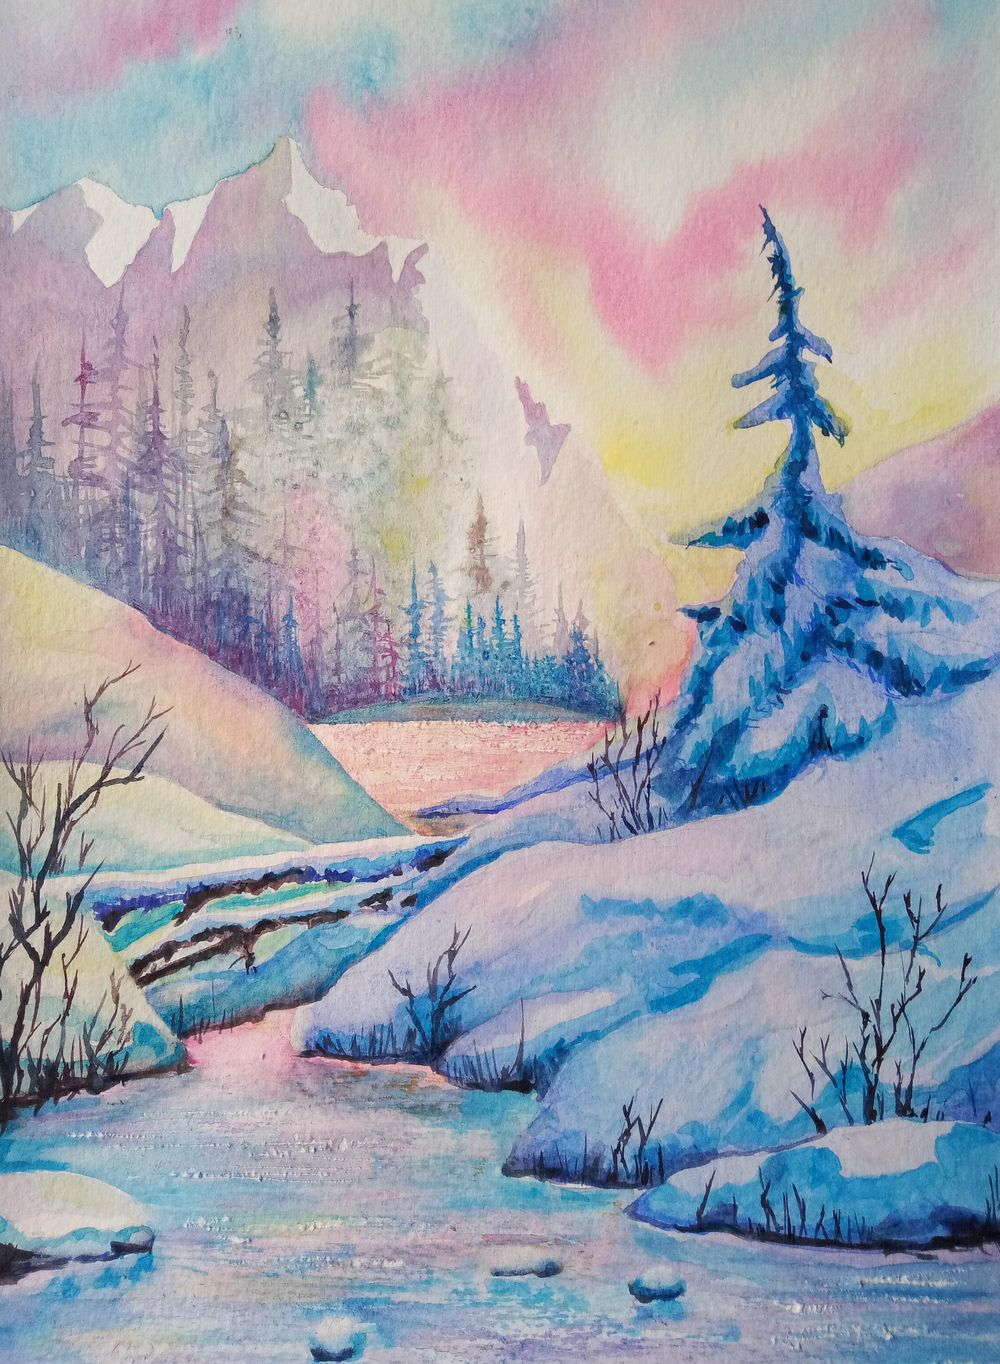 Painting A Winter Mountain Sunset In Watercolor - image 1 - student project